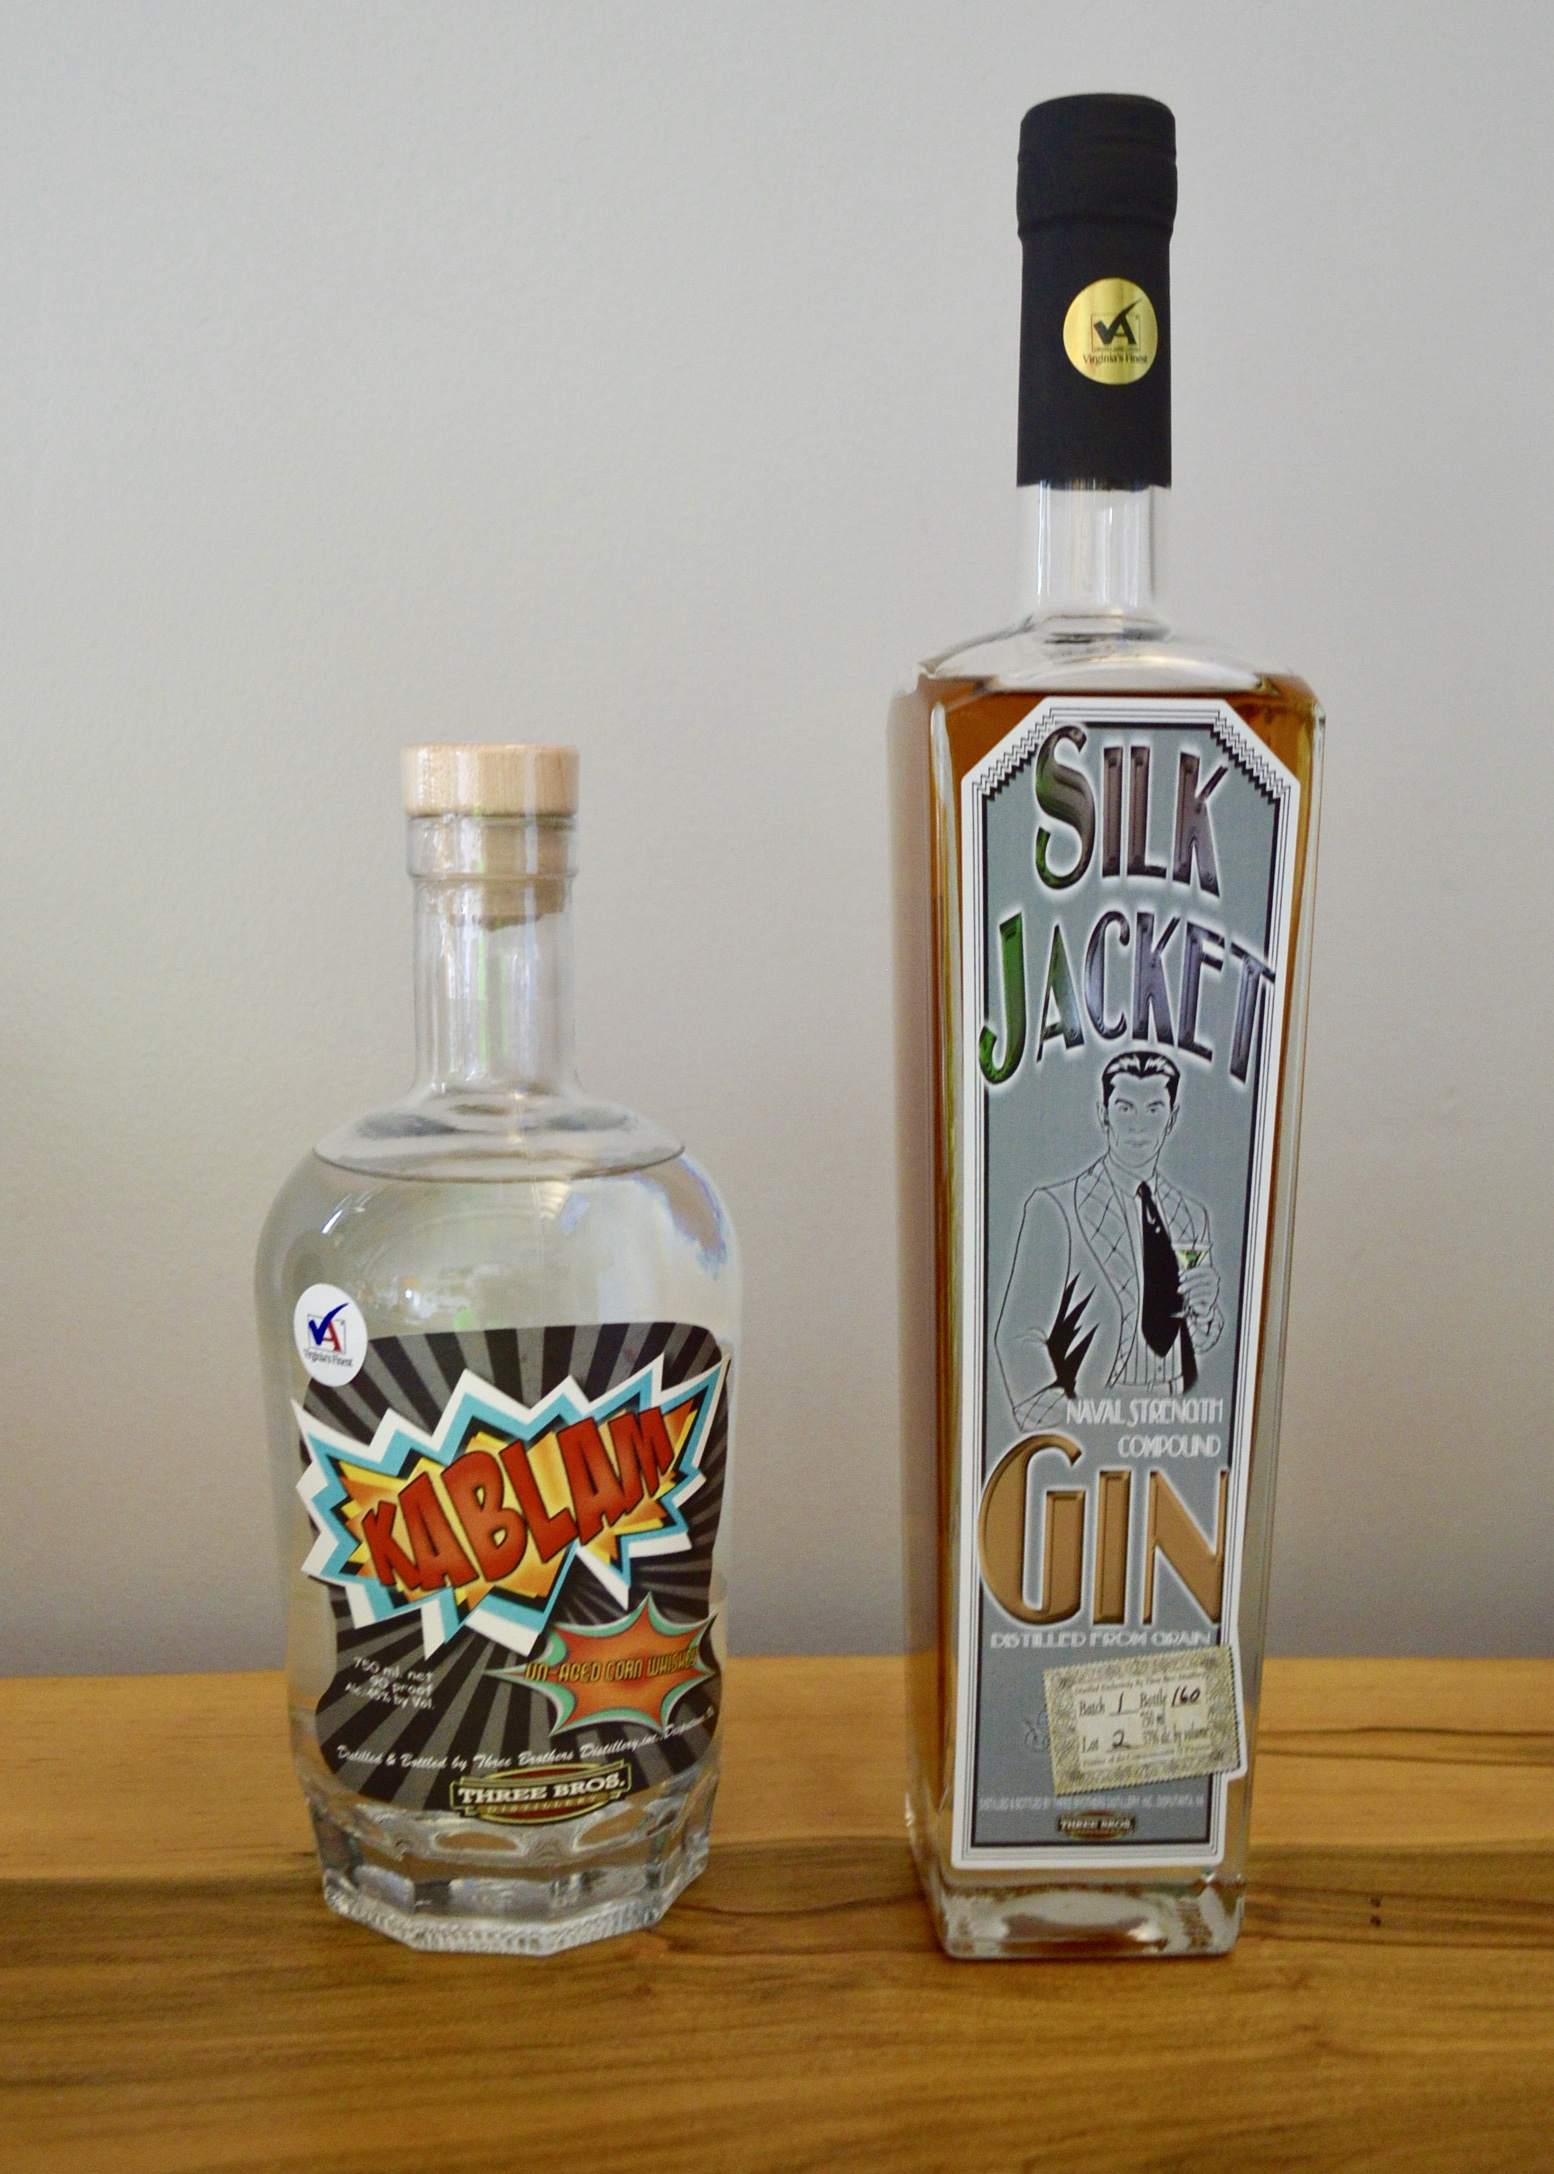 Silk Jacket Gin - Three Brothers Whiskey Distillery